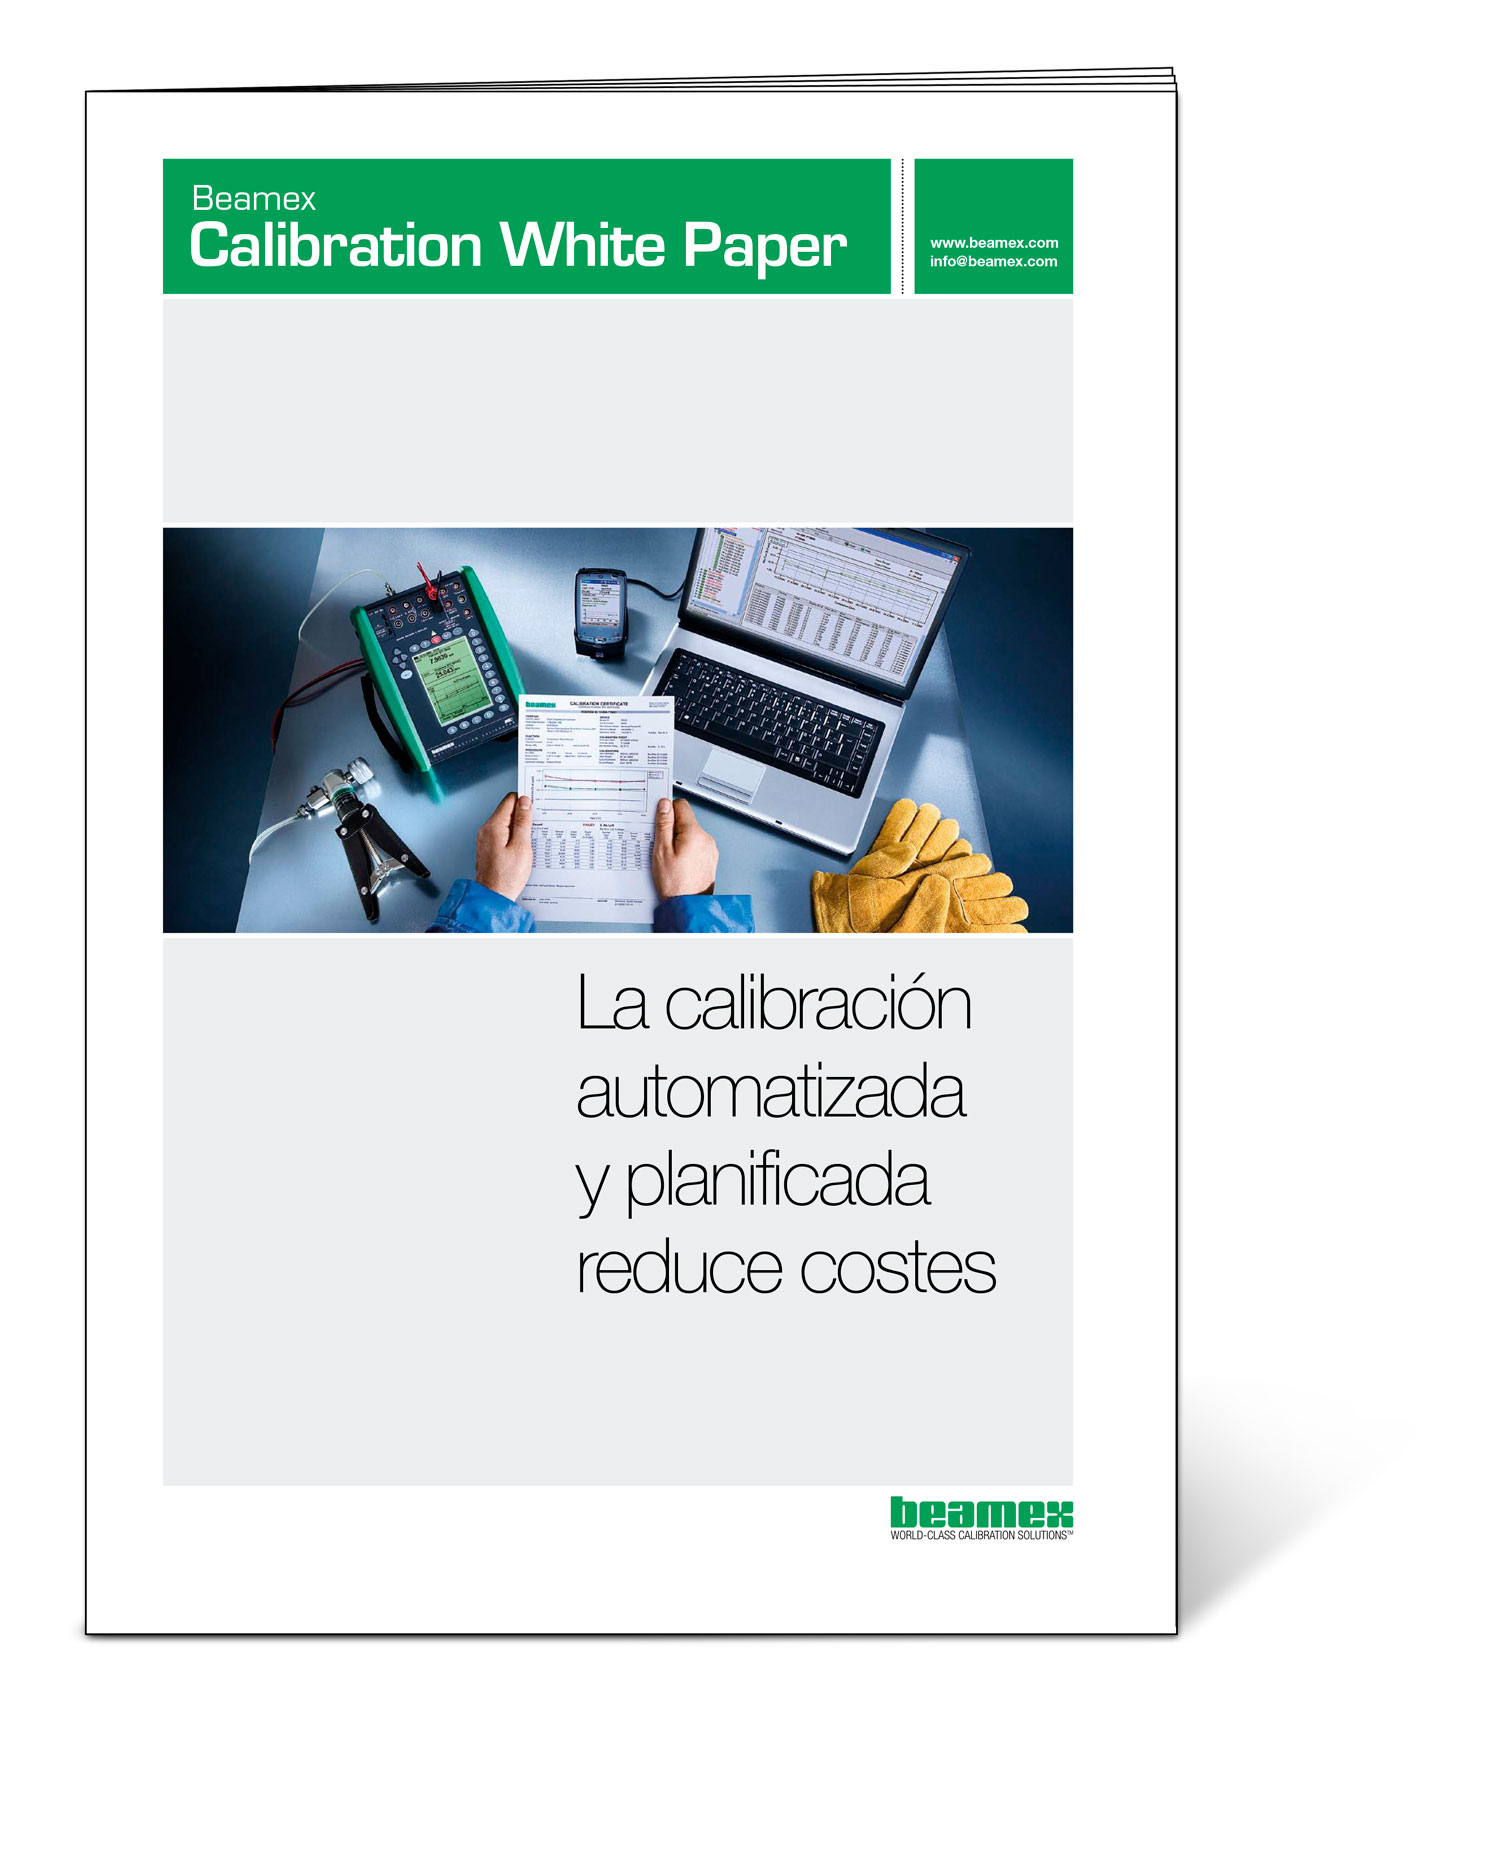 Beamex-WP-Automated-calibration-lowers-costs-ESP-1500px-v1.jpg